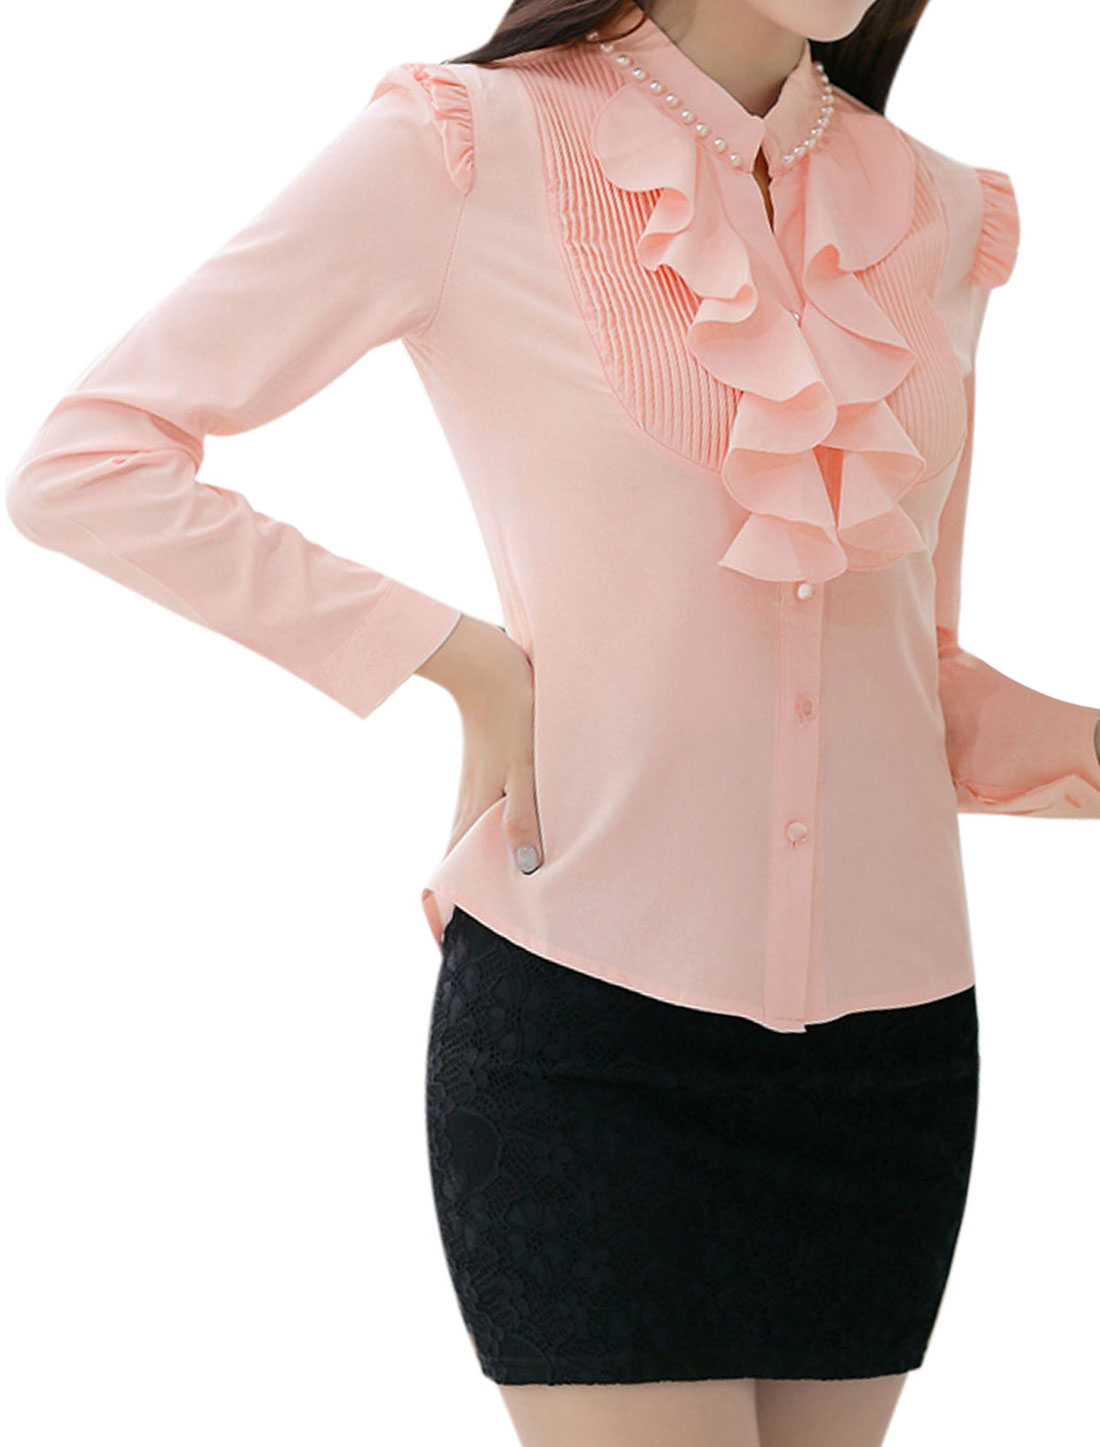 Beads Decor Detail Button Cuffs Pink Shirt for Lady M